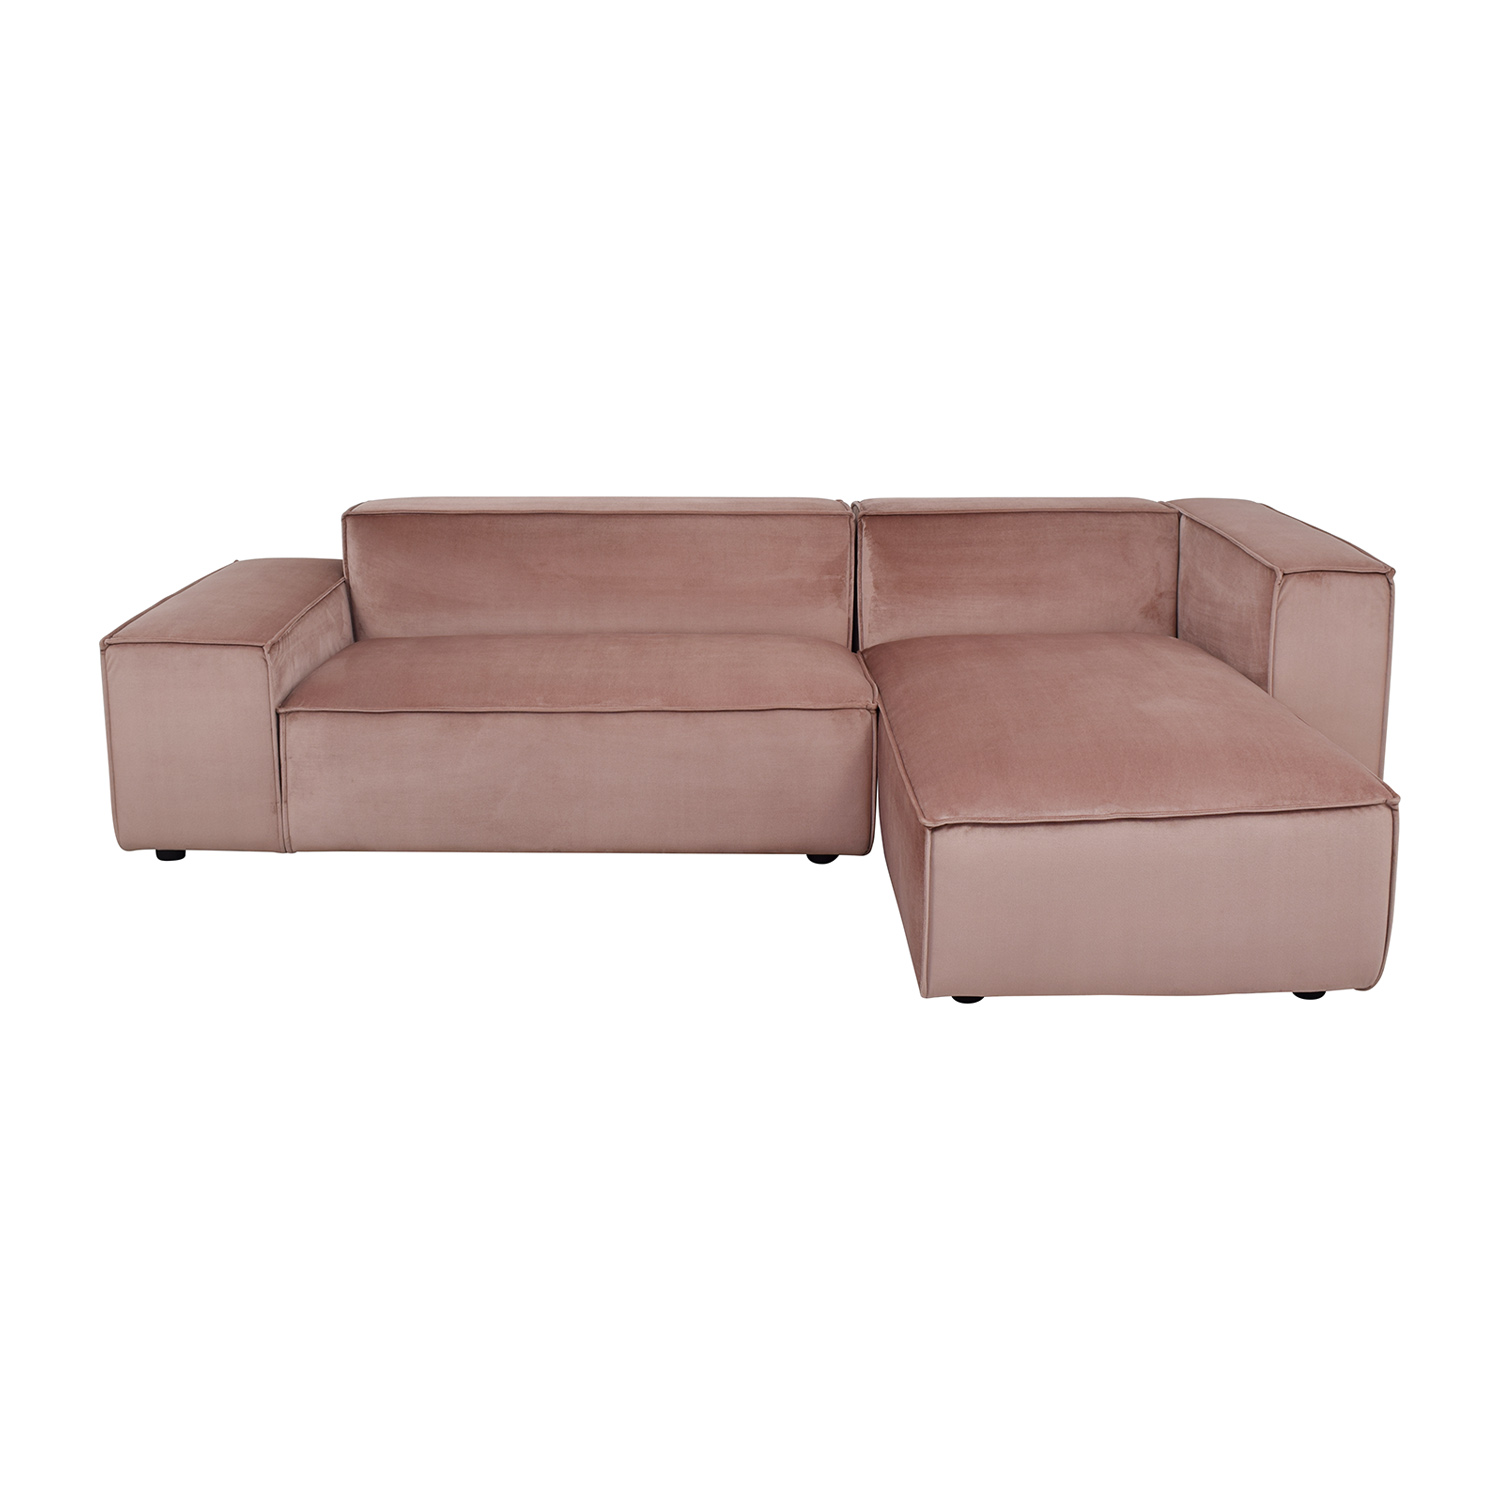 Interior Define Sectional Sofa with Right Chaise price